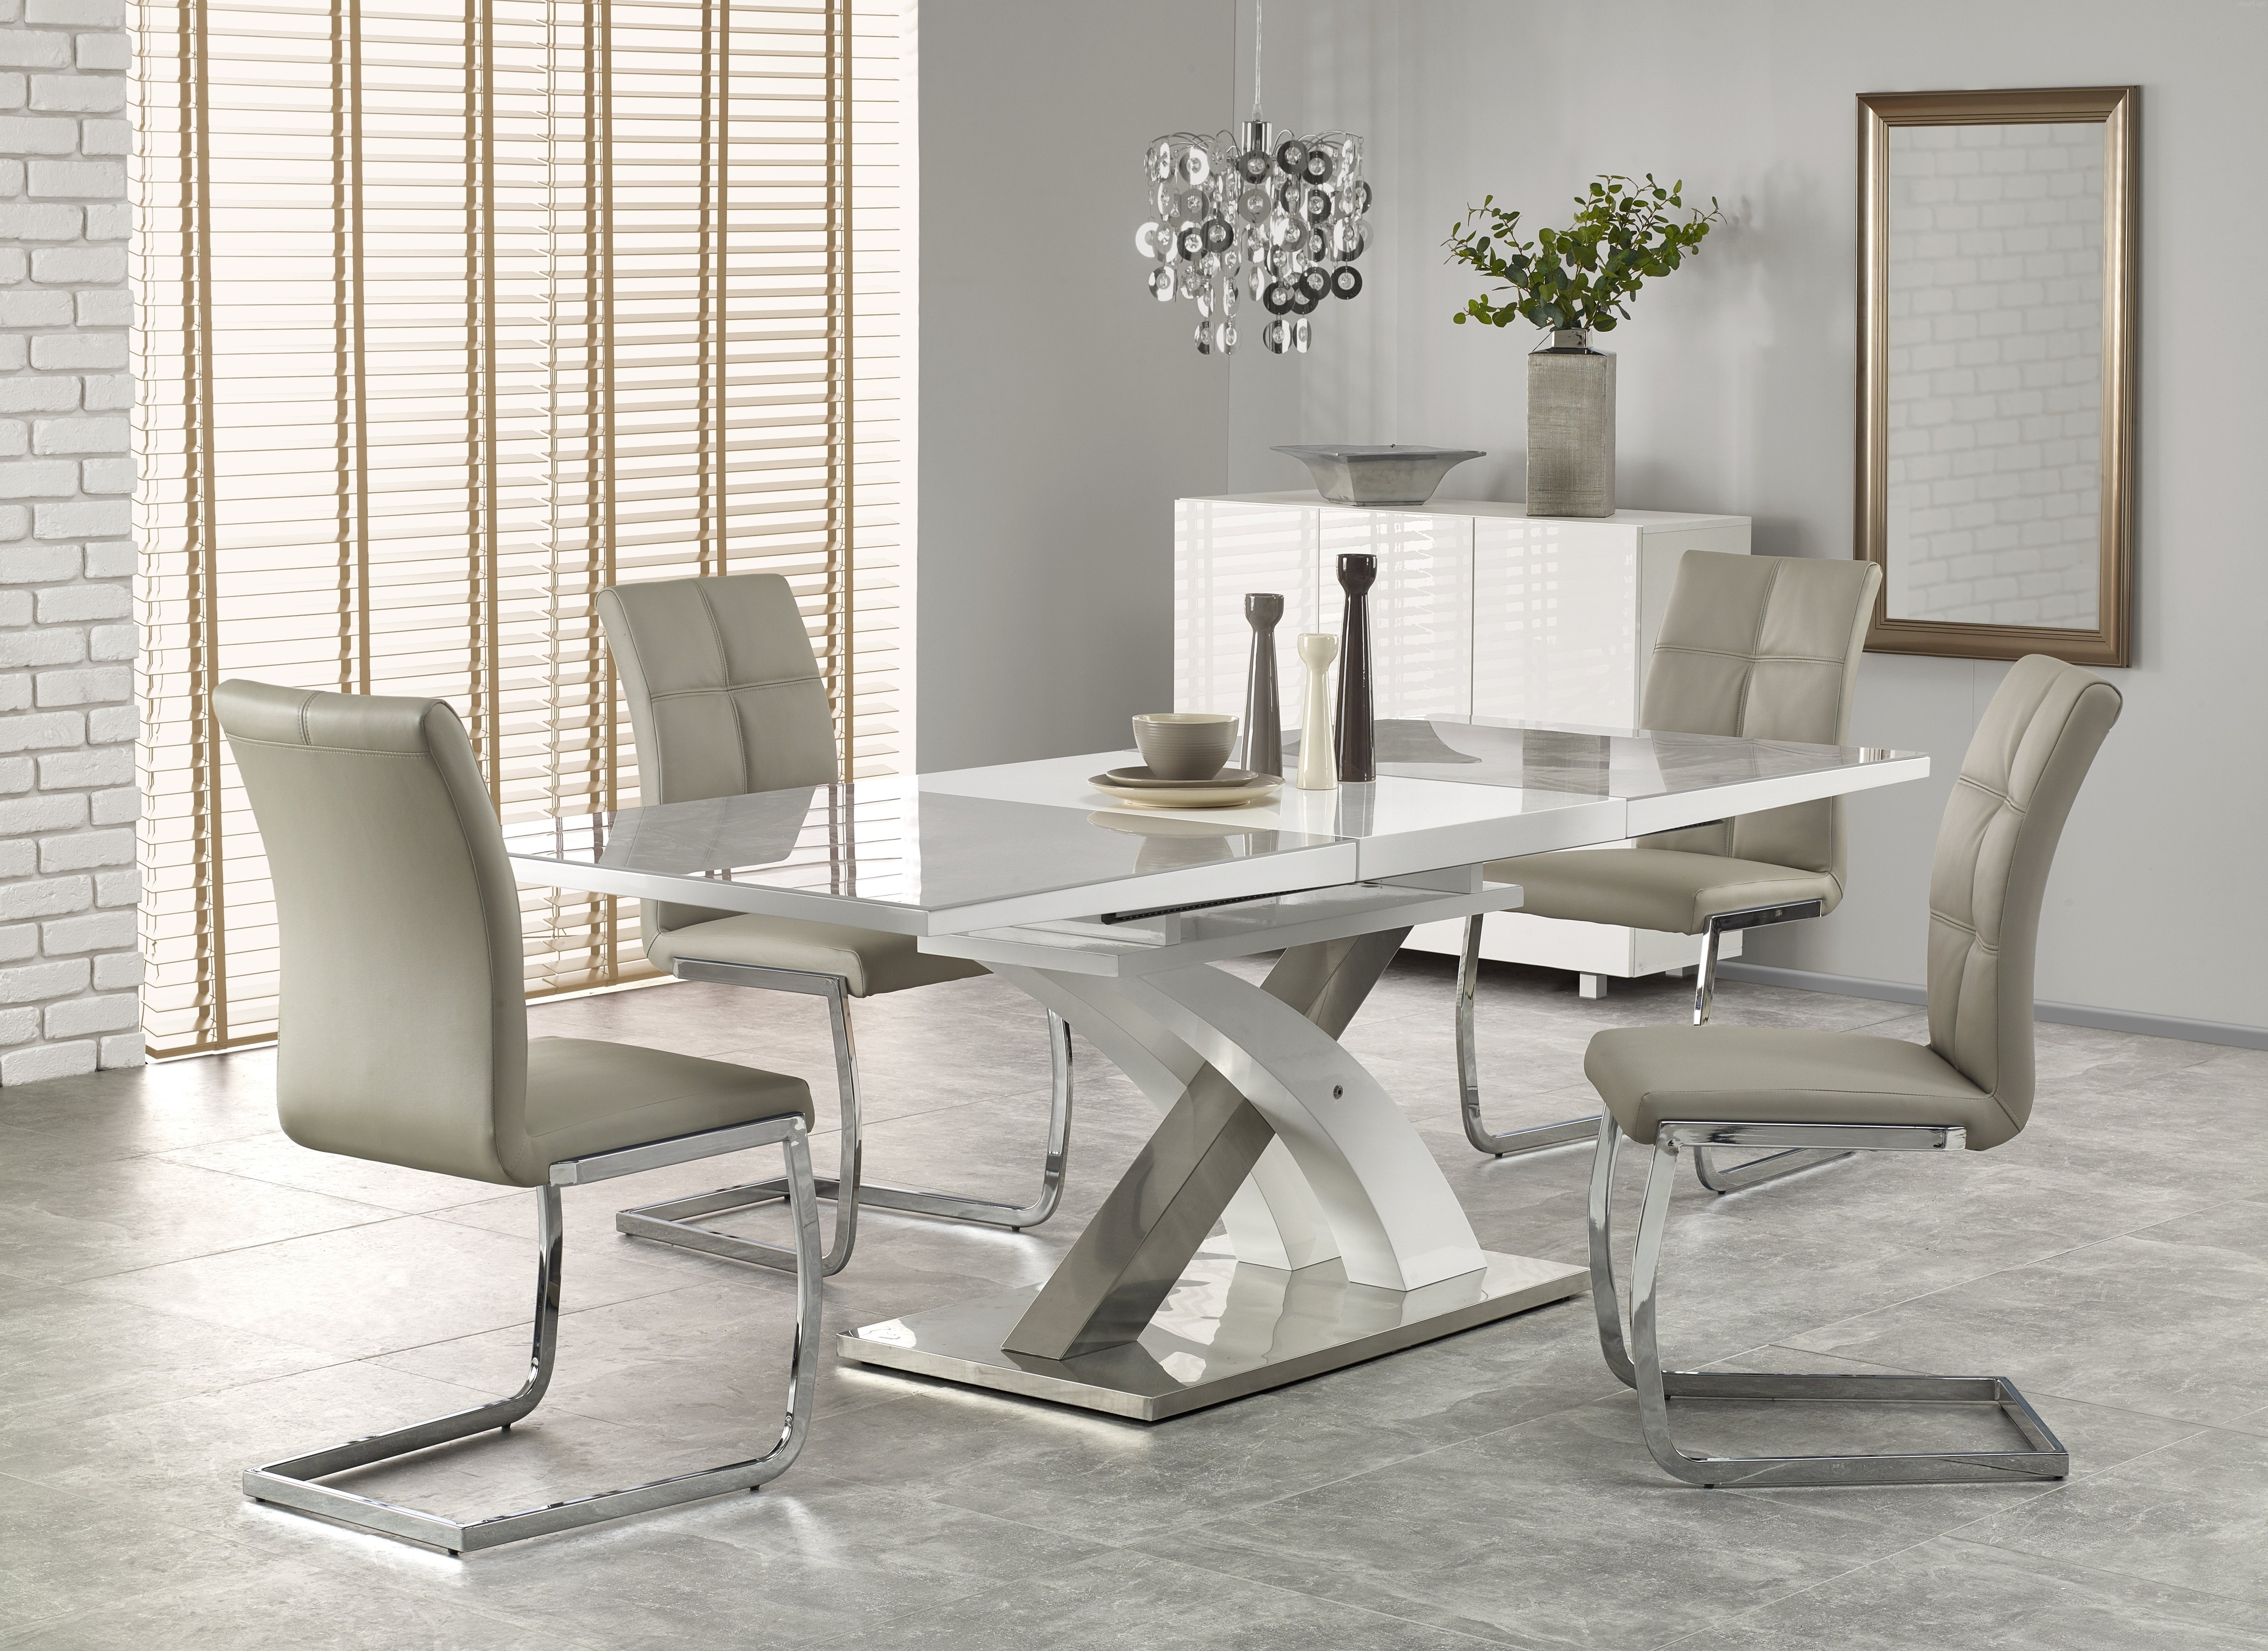 Glass Folding Dining Tables Inside Well Known Buy Harmony High Gloss White Grey Glass Extendable Dining Table (Gallery 3 of 25)